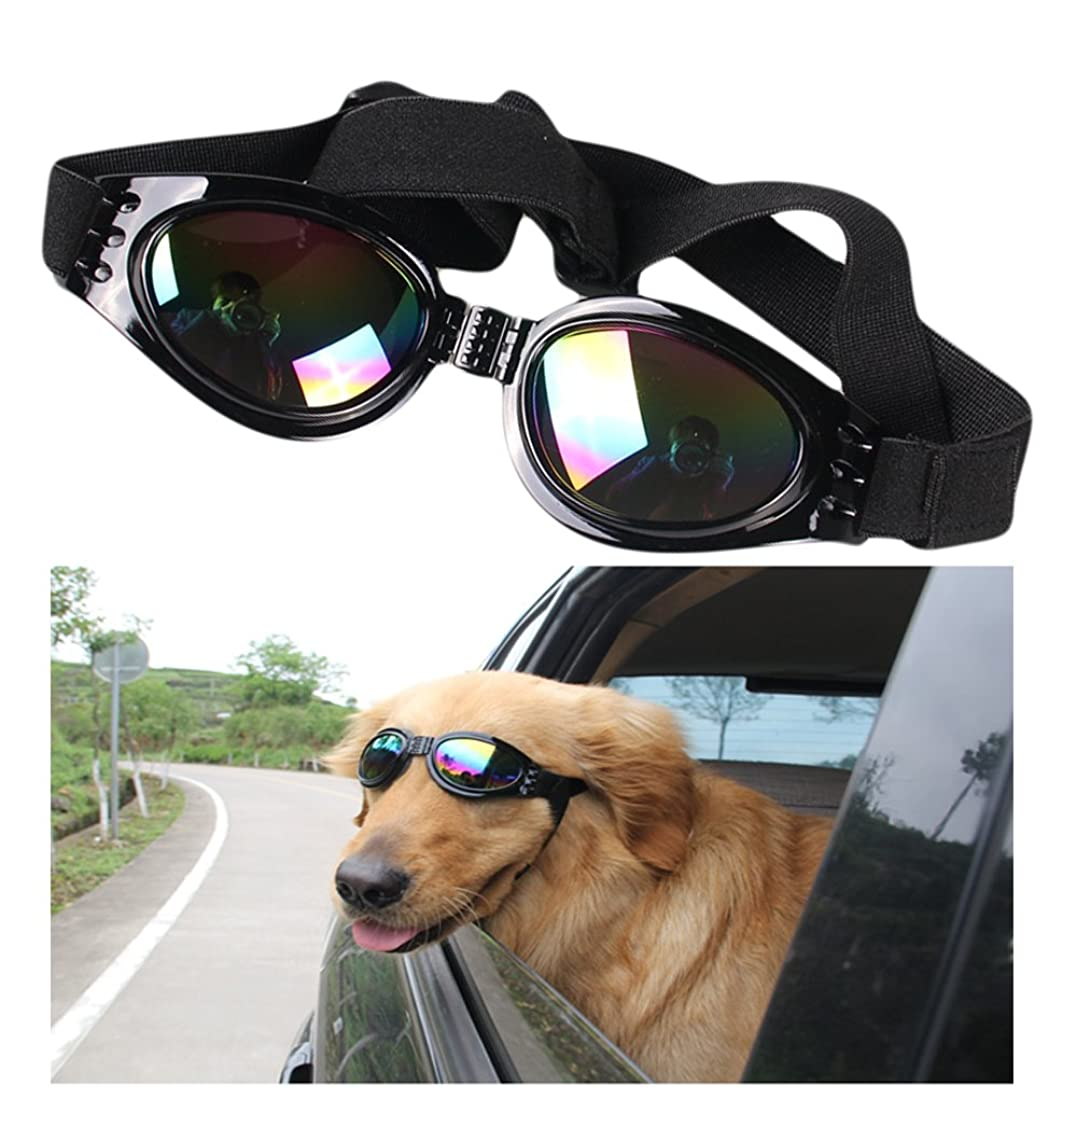 VANVENE Dog Sunglasses Pet Glasses Dog Glasses Dog UV Protective Foldable Sunglasses Dog Goggles Eye Wear Protection Waterproof Pet Sunglasses for Dogs About Over 15 lbs